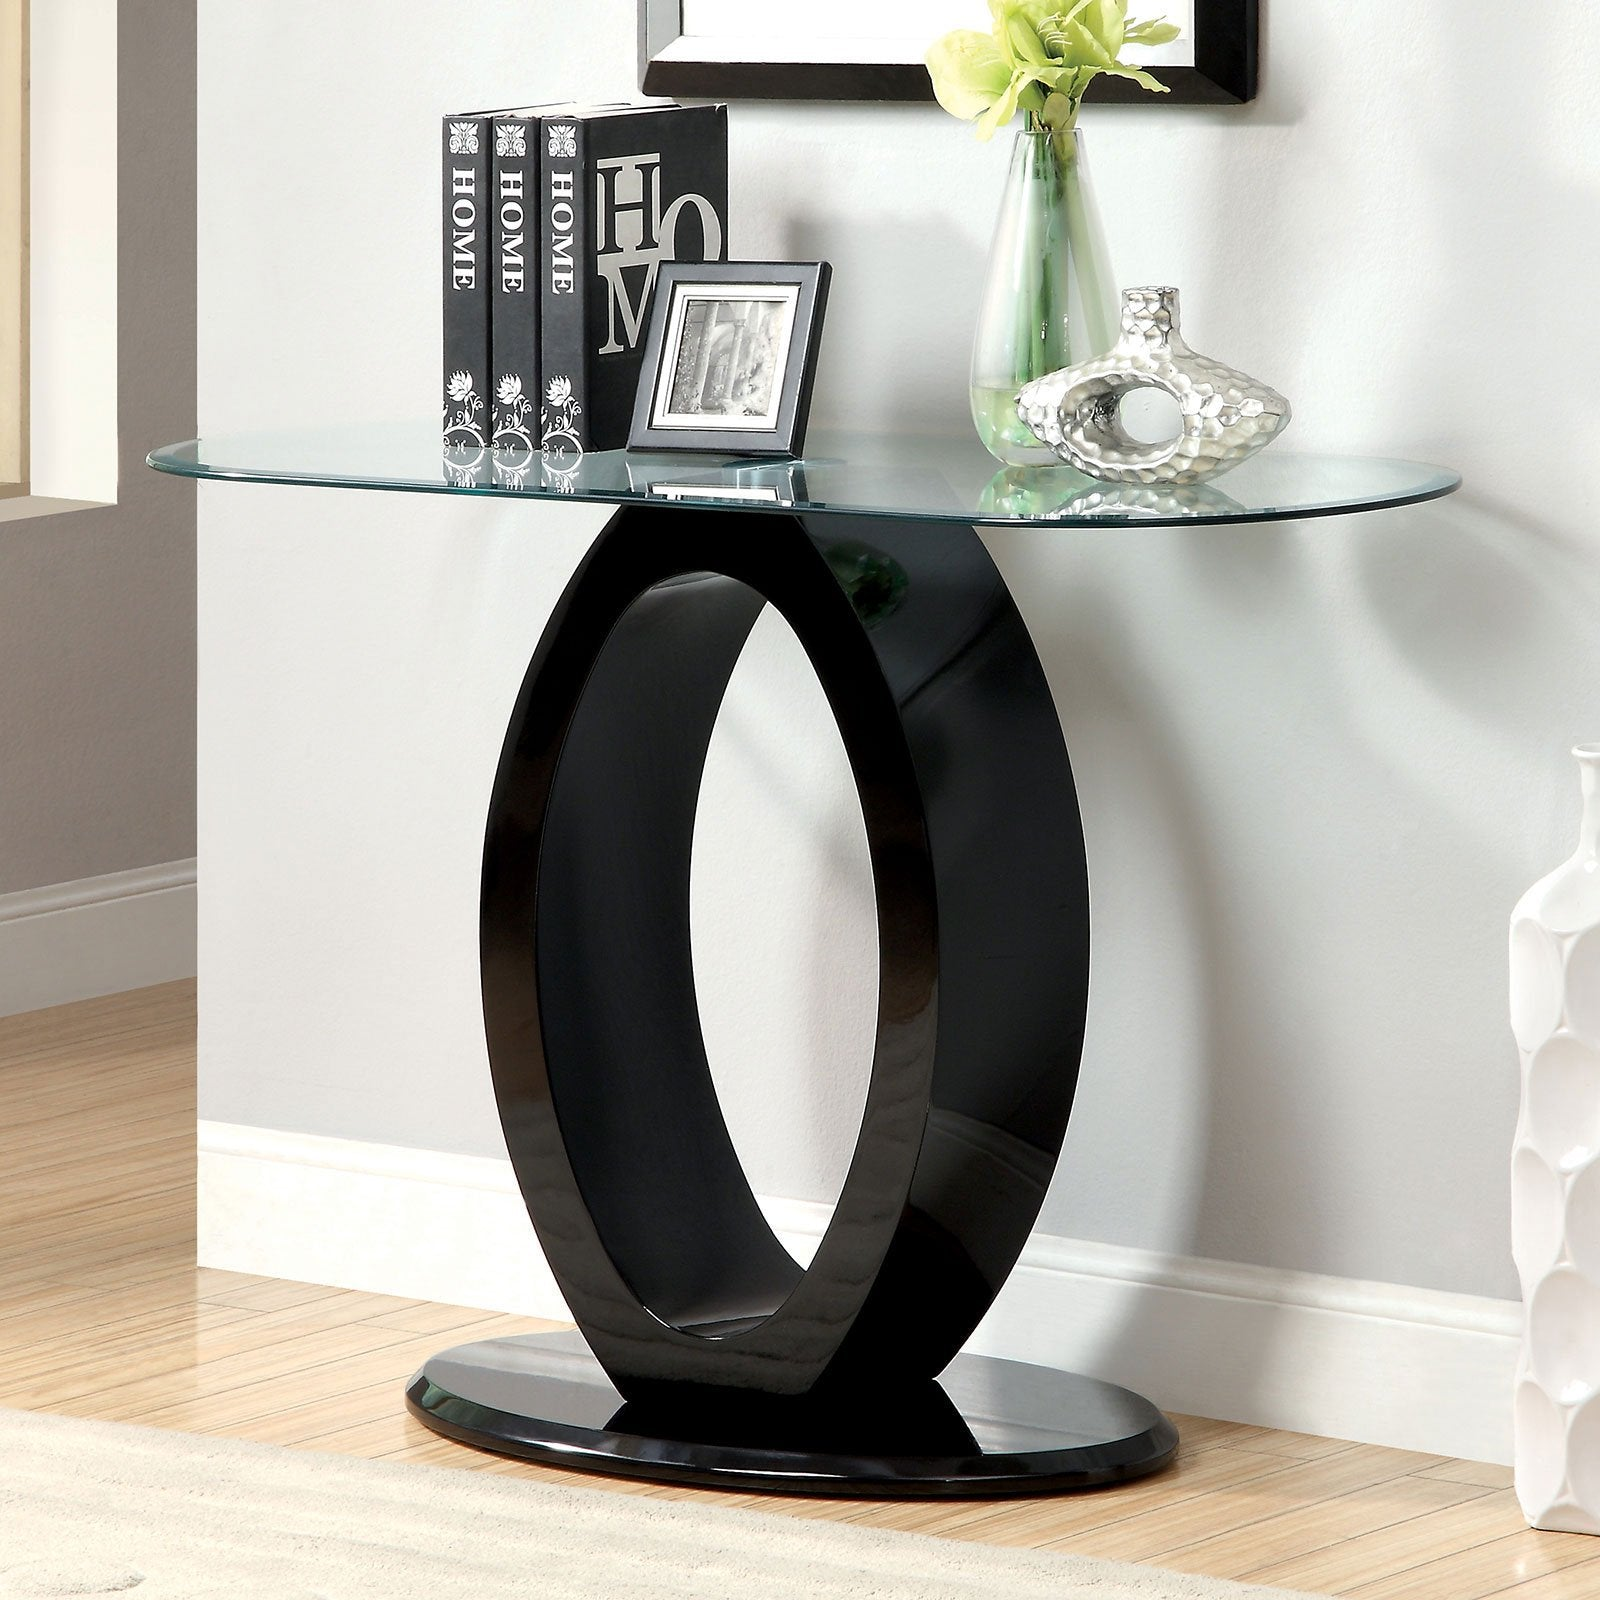 LODIA III Contemporary Sofa Table, Black - InteriorDesignsToGo.com